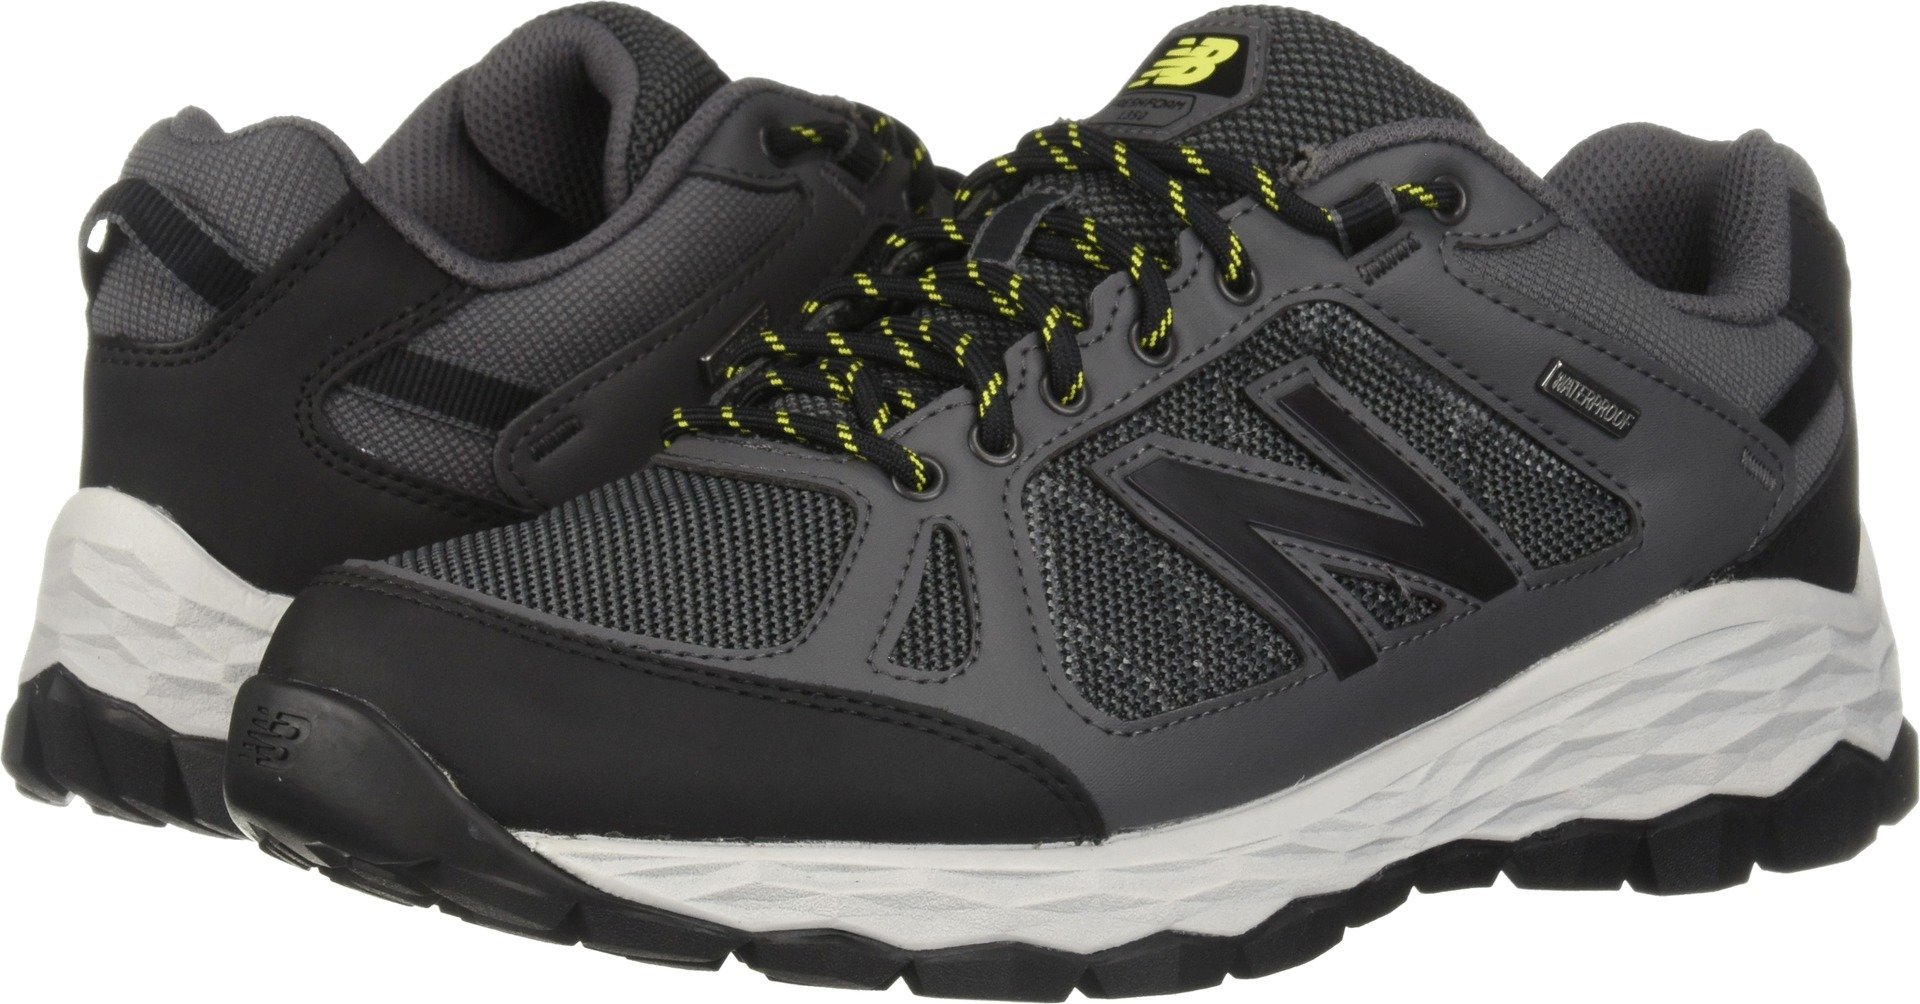 New Balance Men's 13501 Fresh Foam Walking Shoe, Grey, 10.5 2E US by New Balance